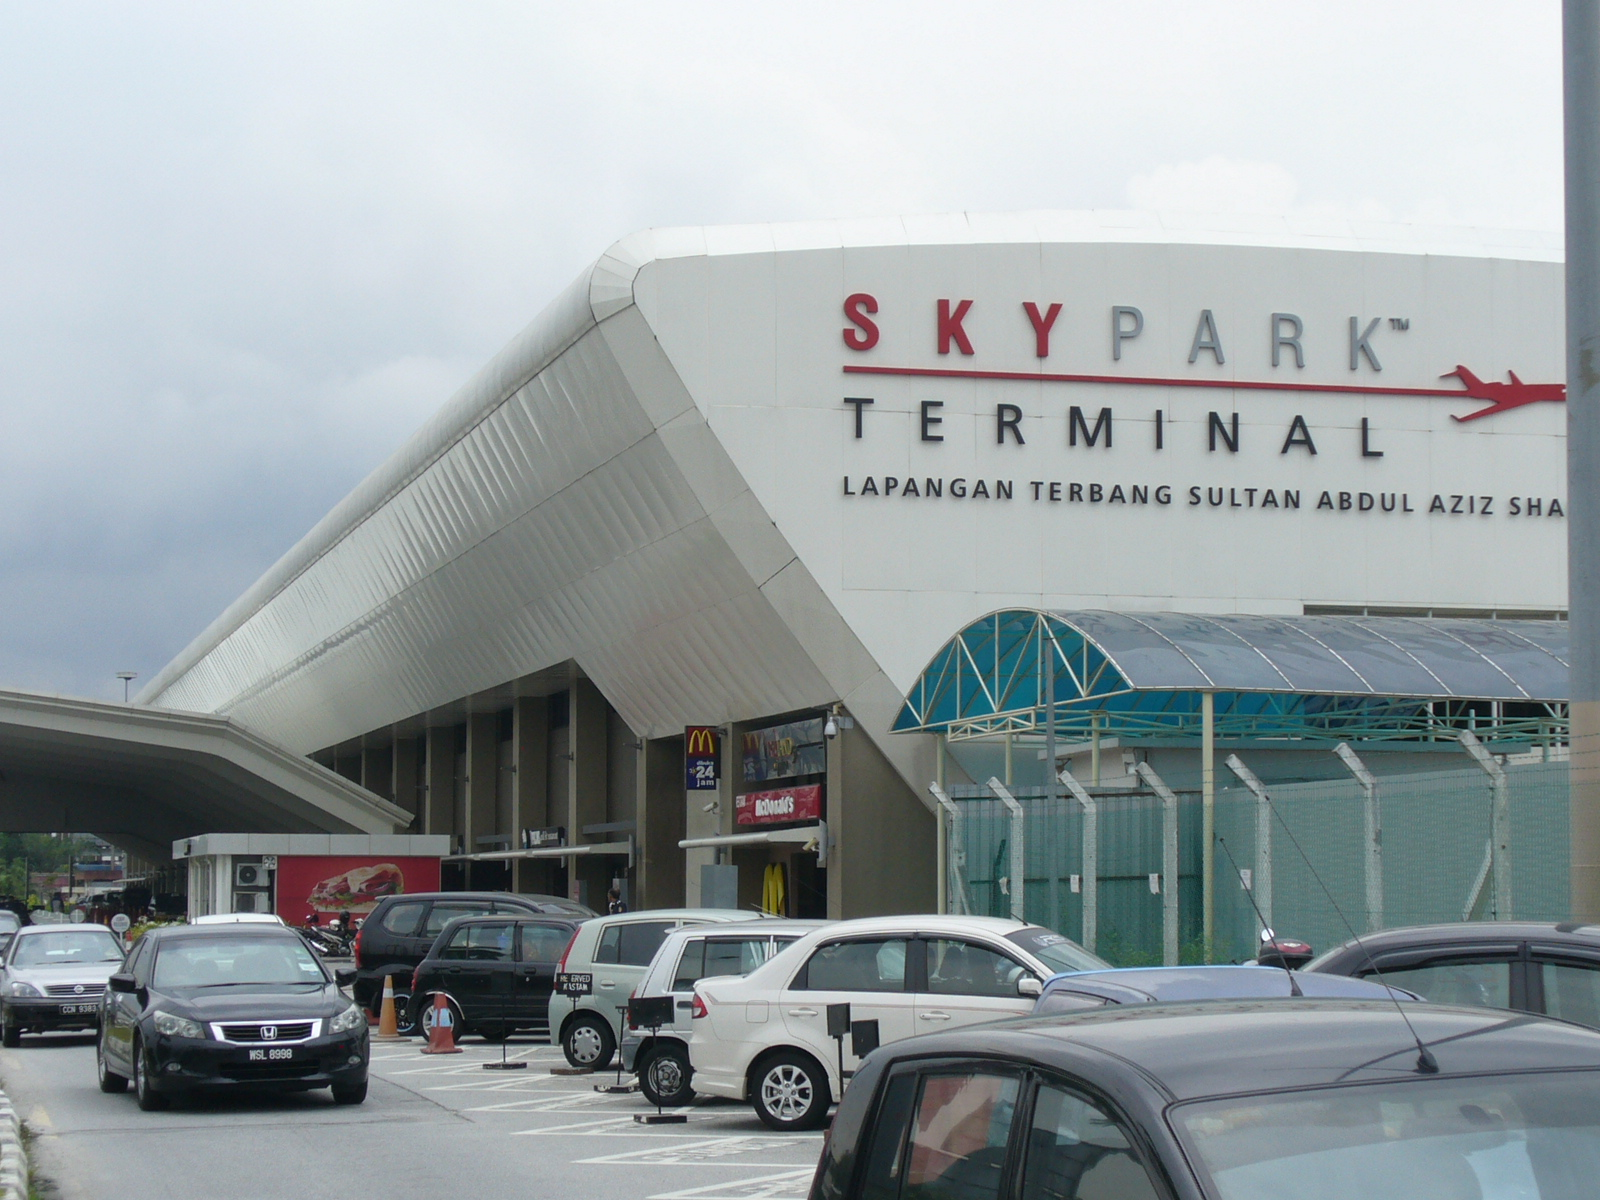 Subang, the old Kuala Lumpur International Airport now termed as a 'Sky Park' and base to a flying club along with a host of aviation related business's  linked mainly to aircraft servicing and maintenance.